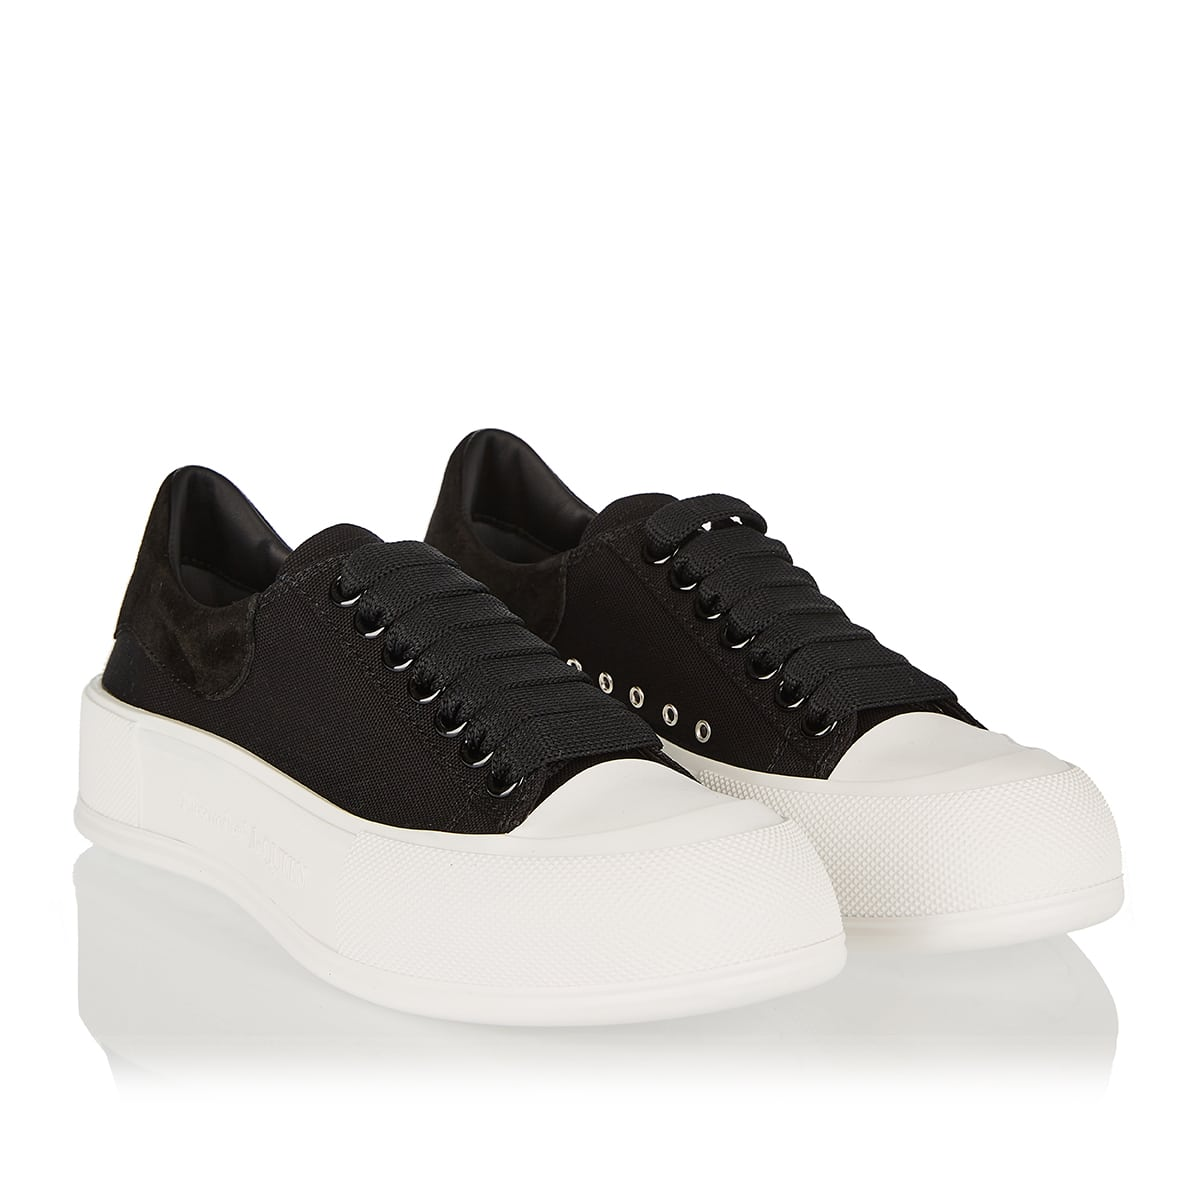 Oversized-sole canvas sneakers